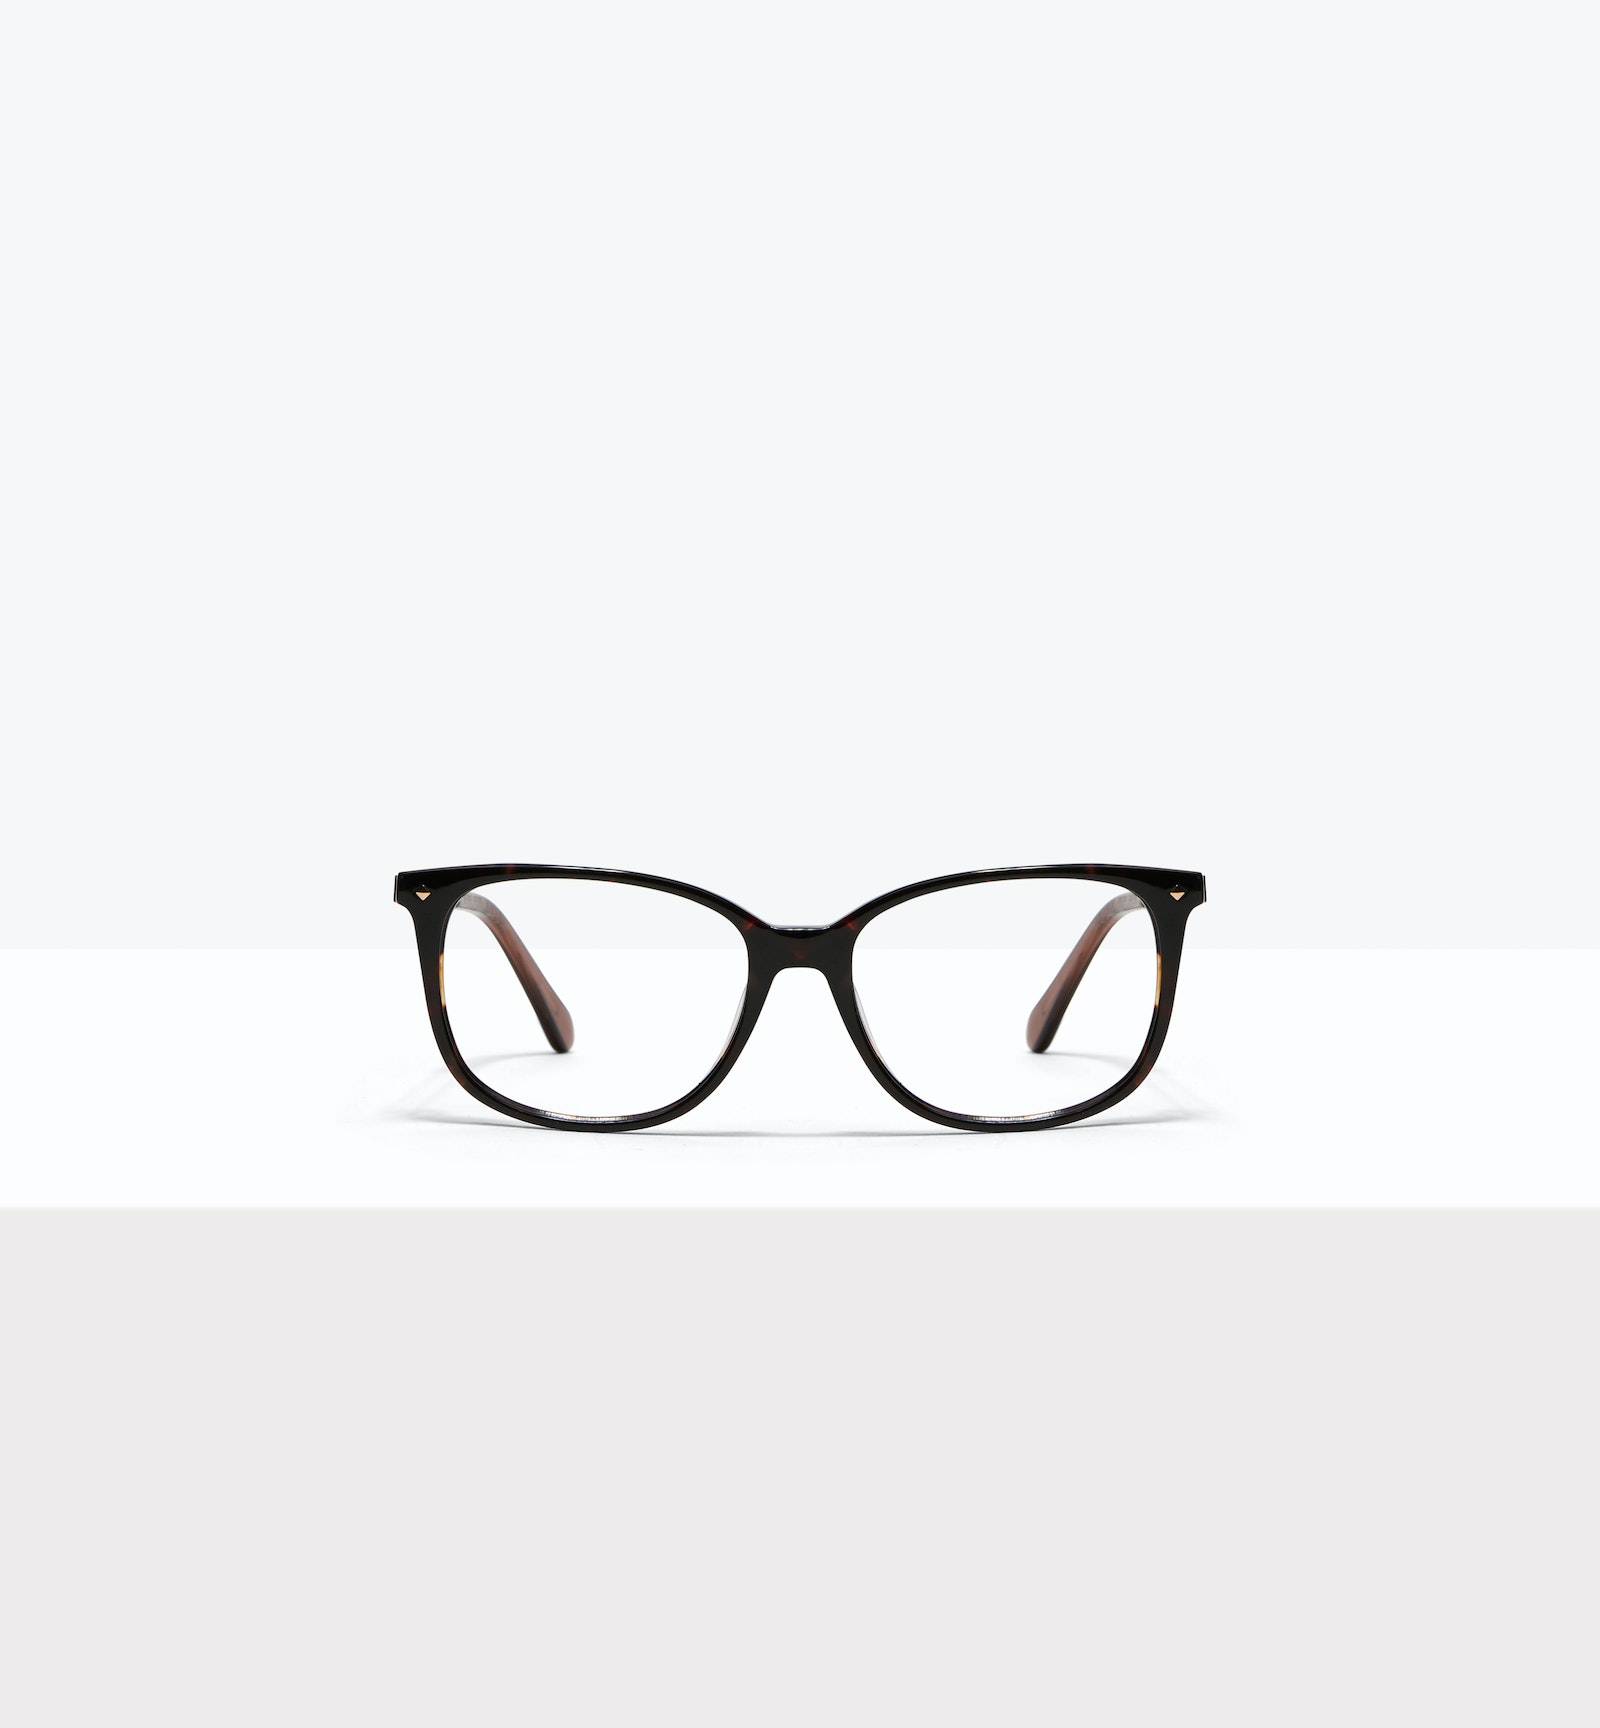 Affordable Fashion Glasses Square Eyeglasses Women Refine Petite Tortoise